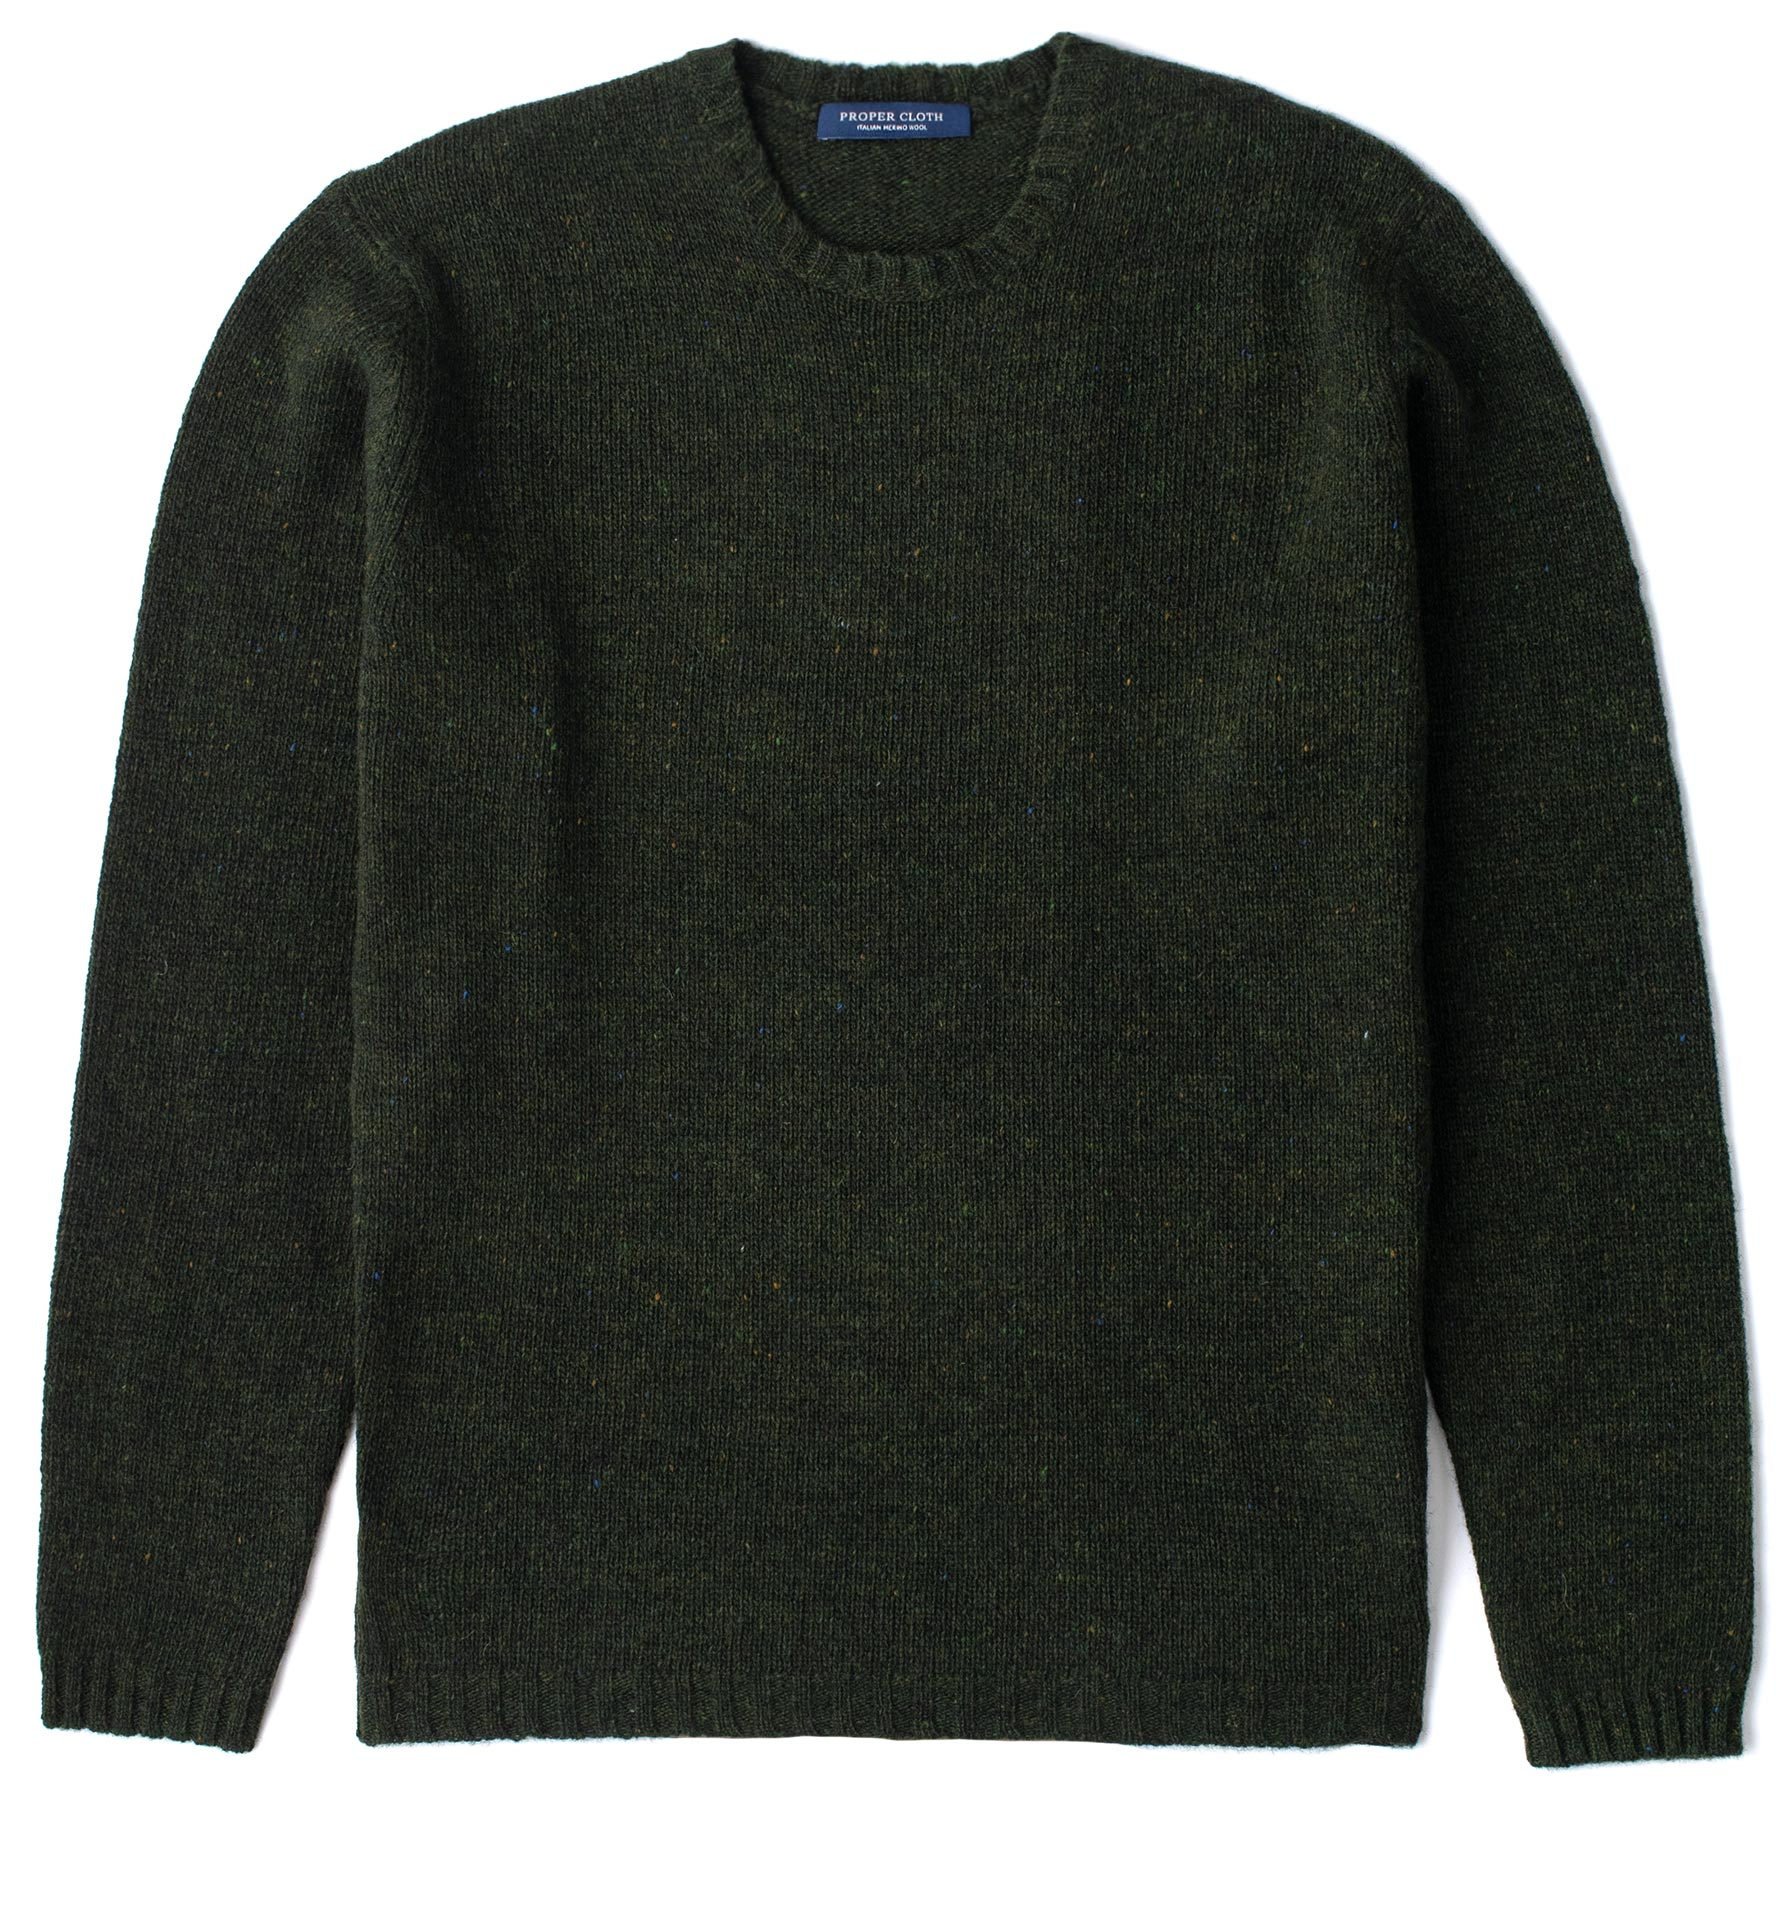 Zoom Image of Pine Donegal Lambswool Sweater